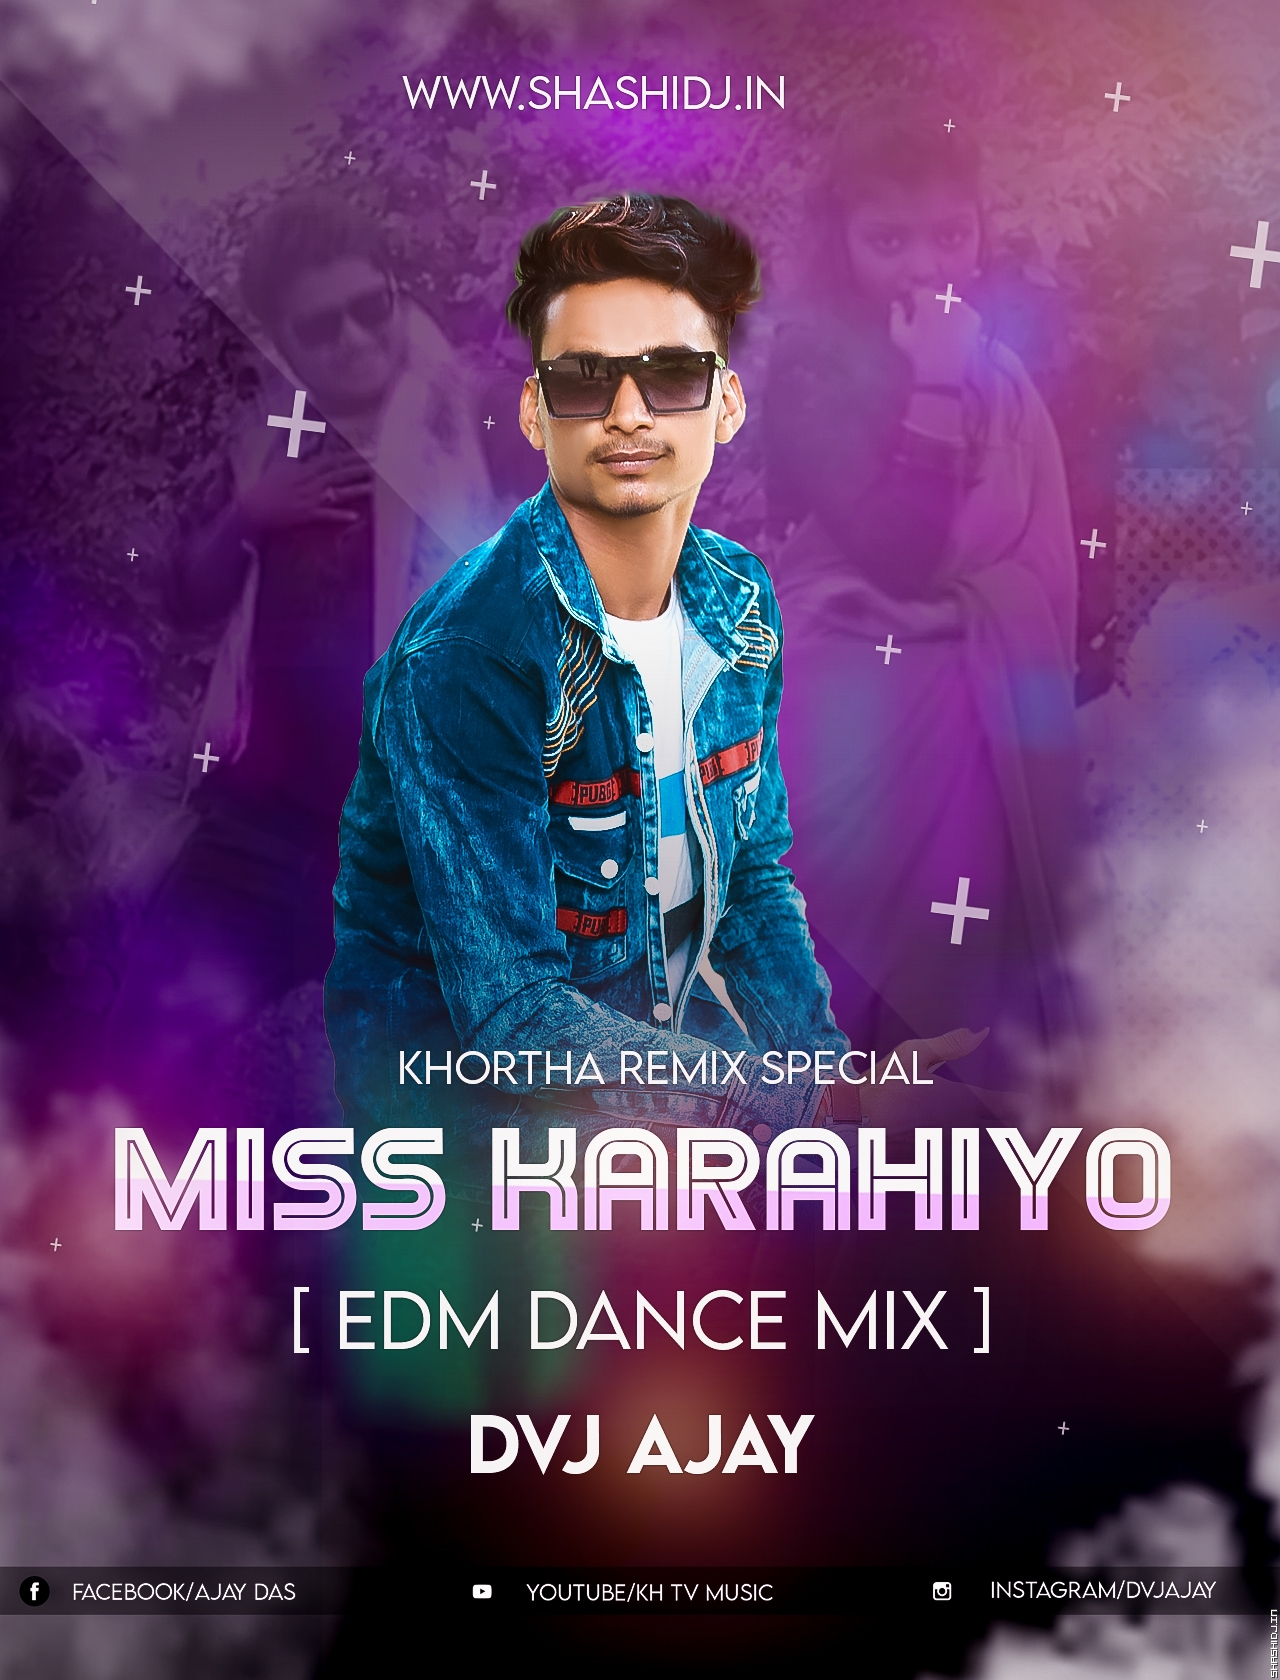 Miss Karahiyo Tora Mane Mane | EDM DANCE MIX | Dvj Ajay .mp3